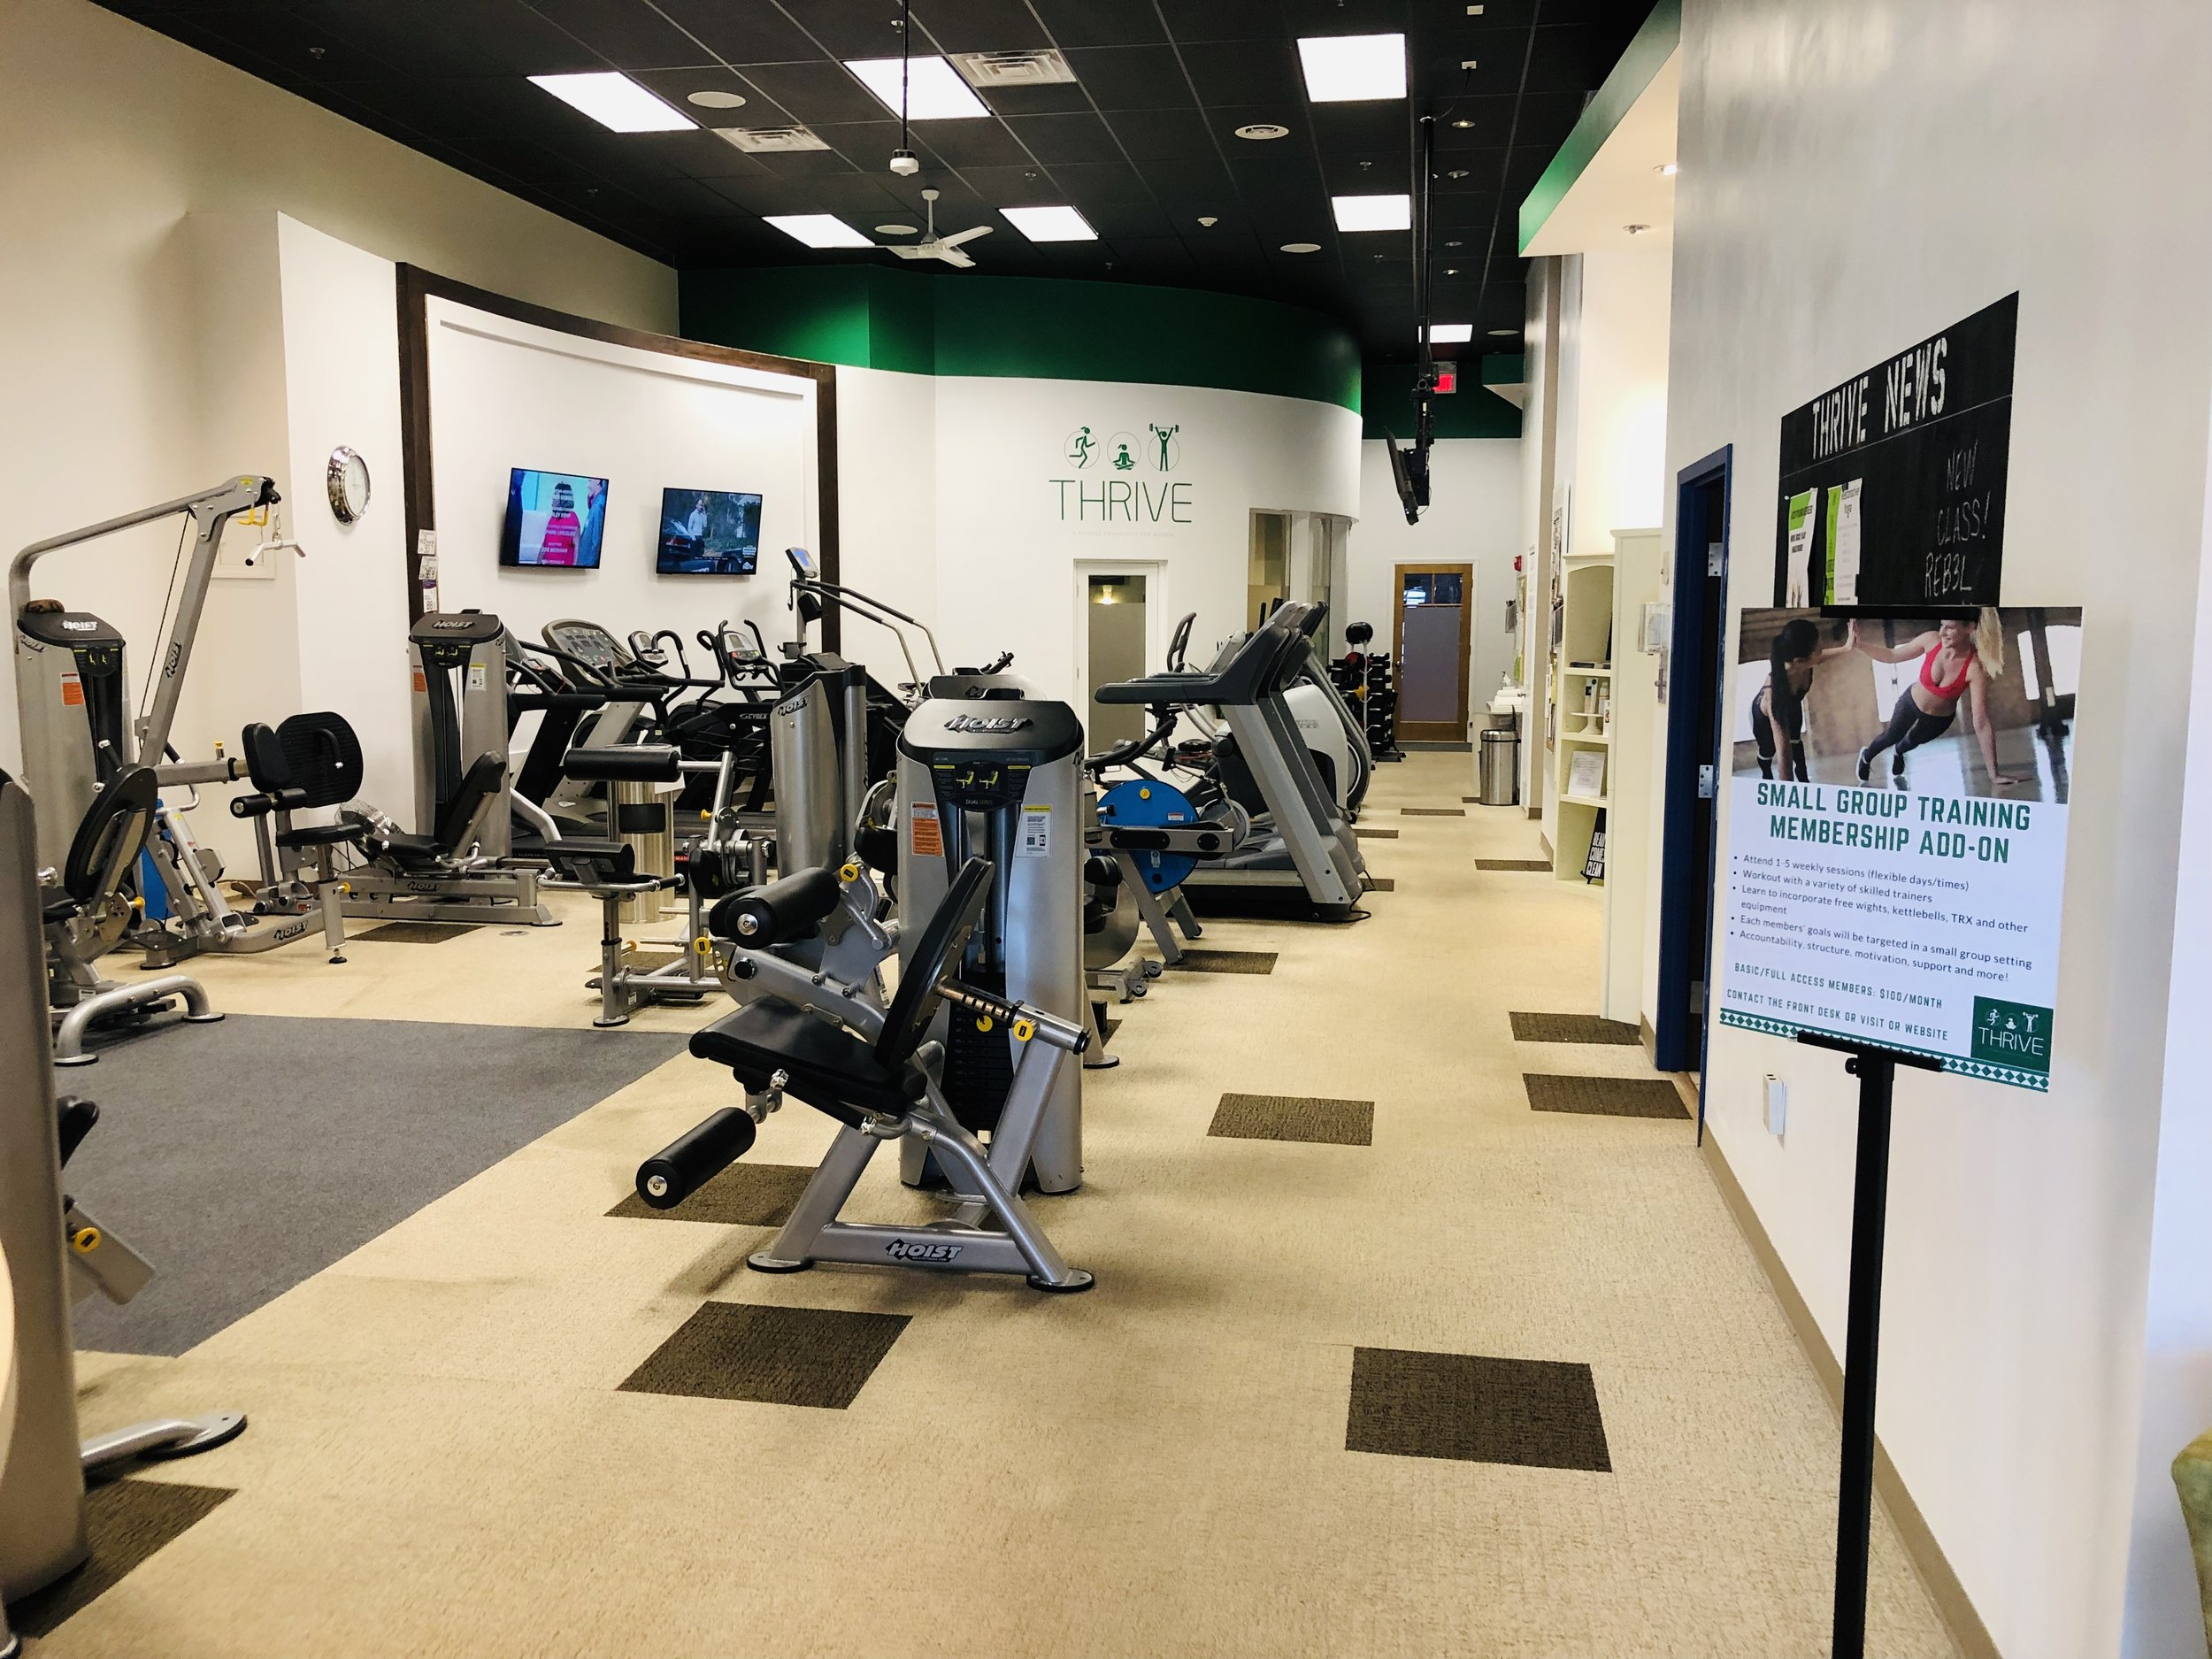 Basic / $49 - Full use of all facility amenities—including infrared saunas, hydro massage, and cardio and strength training equipment.Upgrade to Full-Access for unlimited classes!$49.00 per month.$19.99 initiation fee.No annual commitment required.